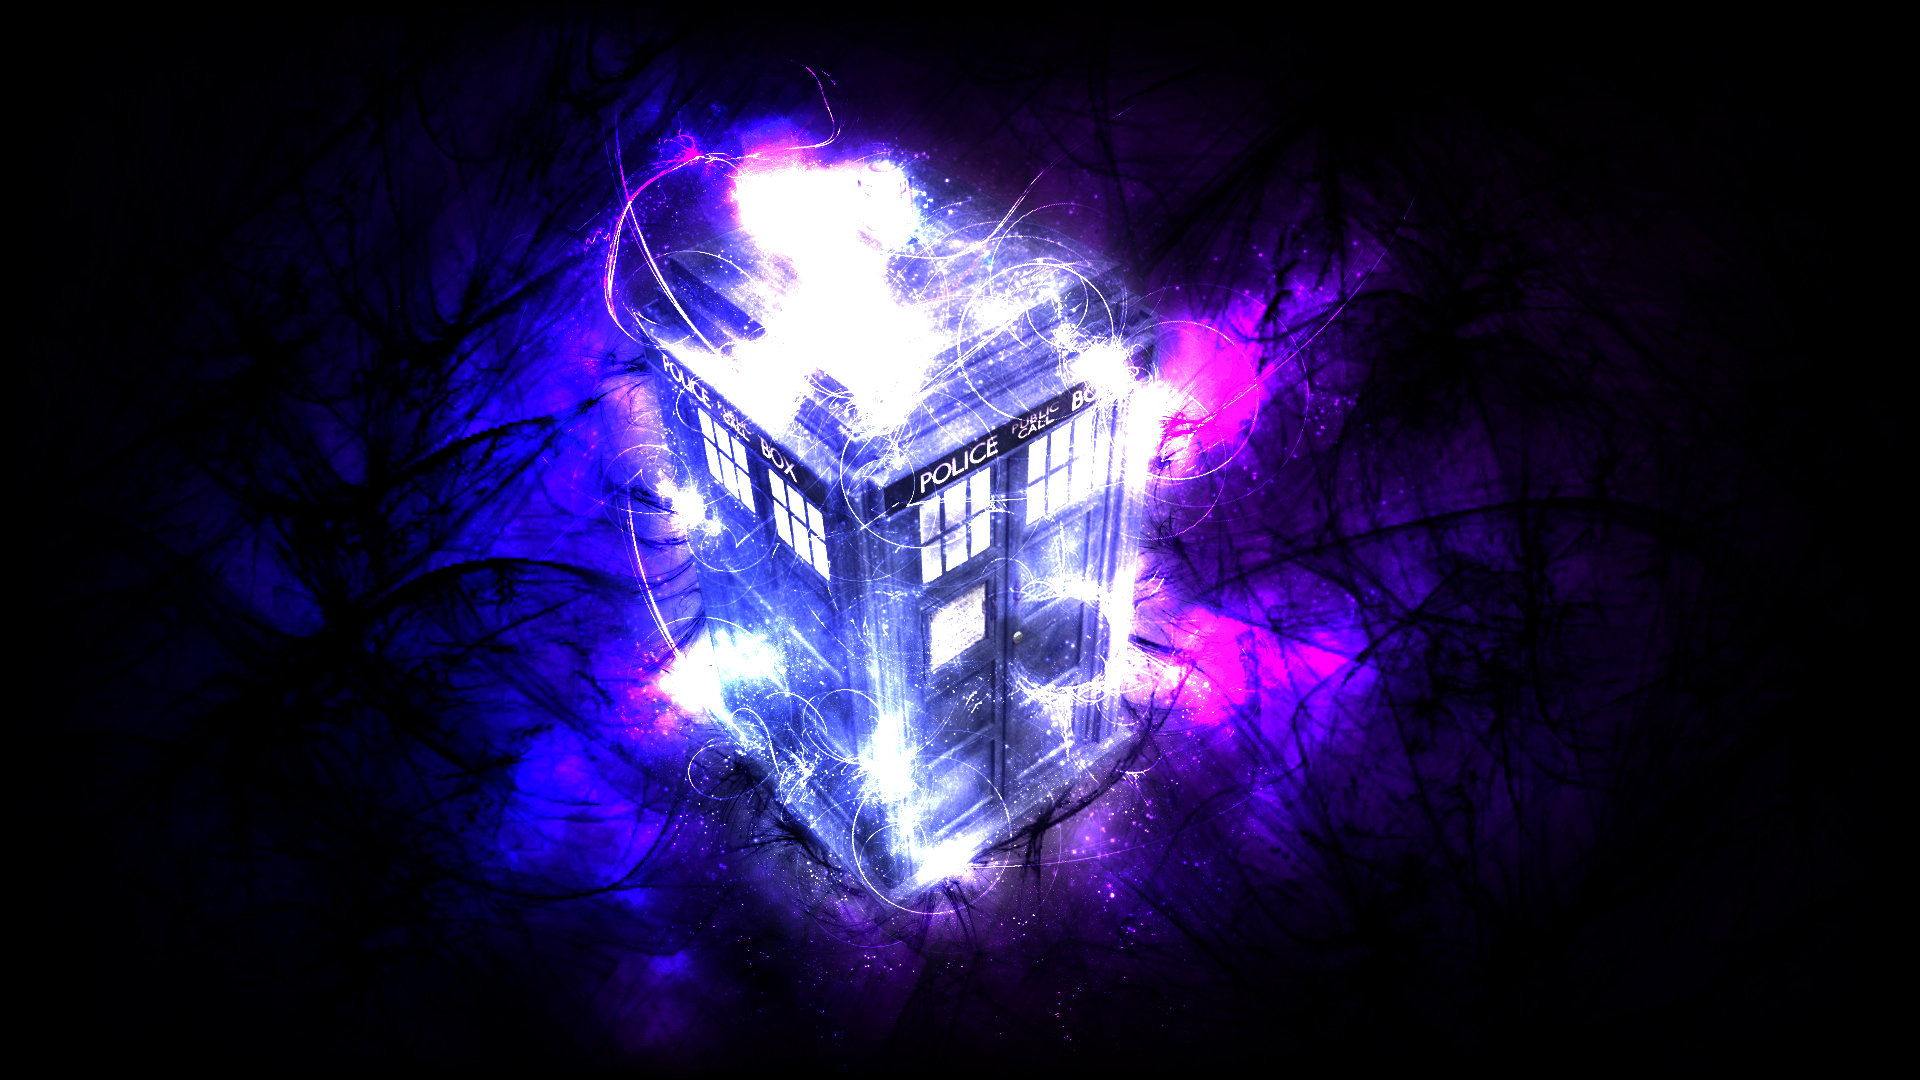 tardis images hd wallpaper - photo #32